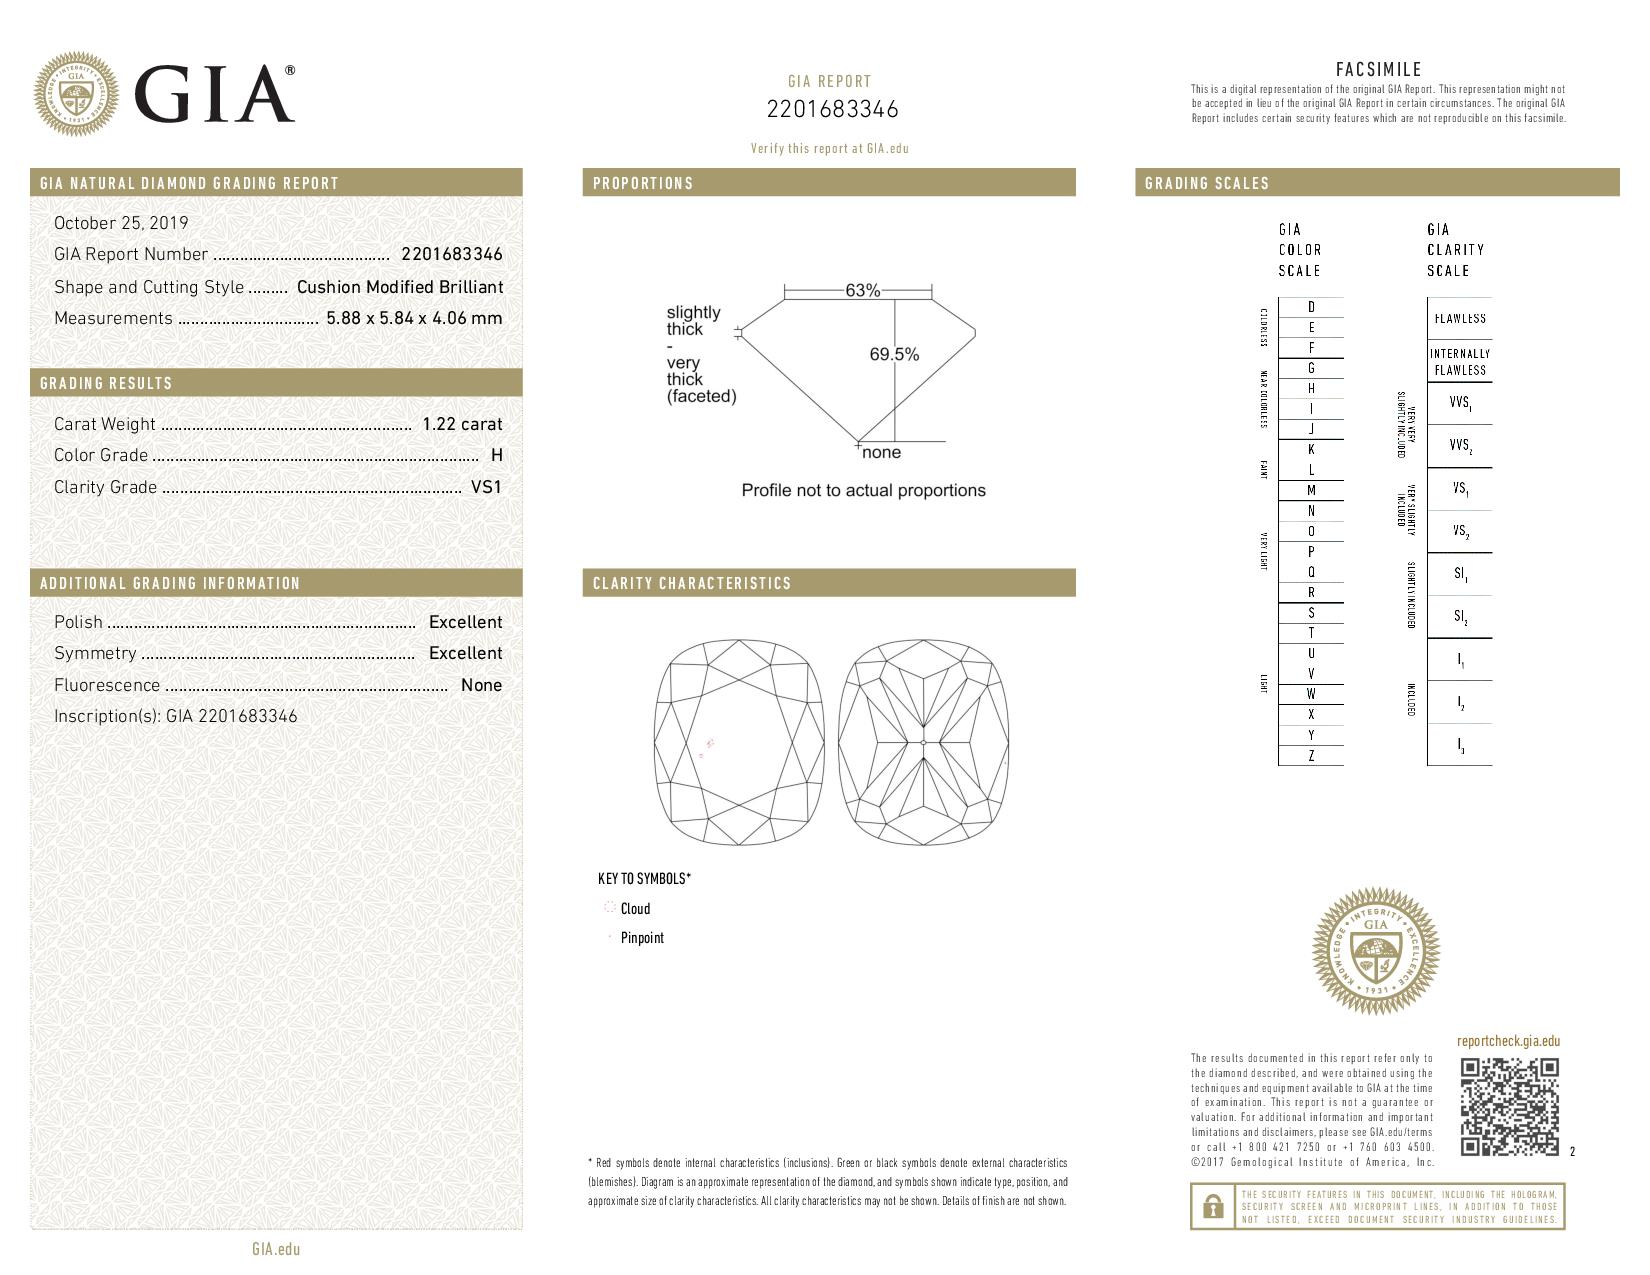 This is a 1.22 carat cushion shape, H color, VS1 clarity natural diamond accompanied by a GIA grading report.